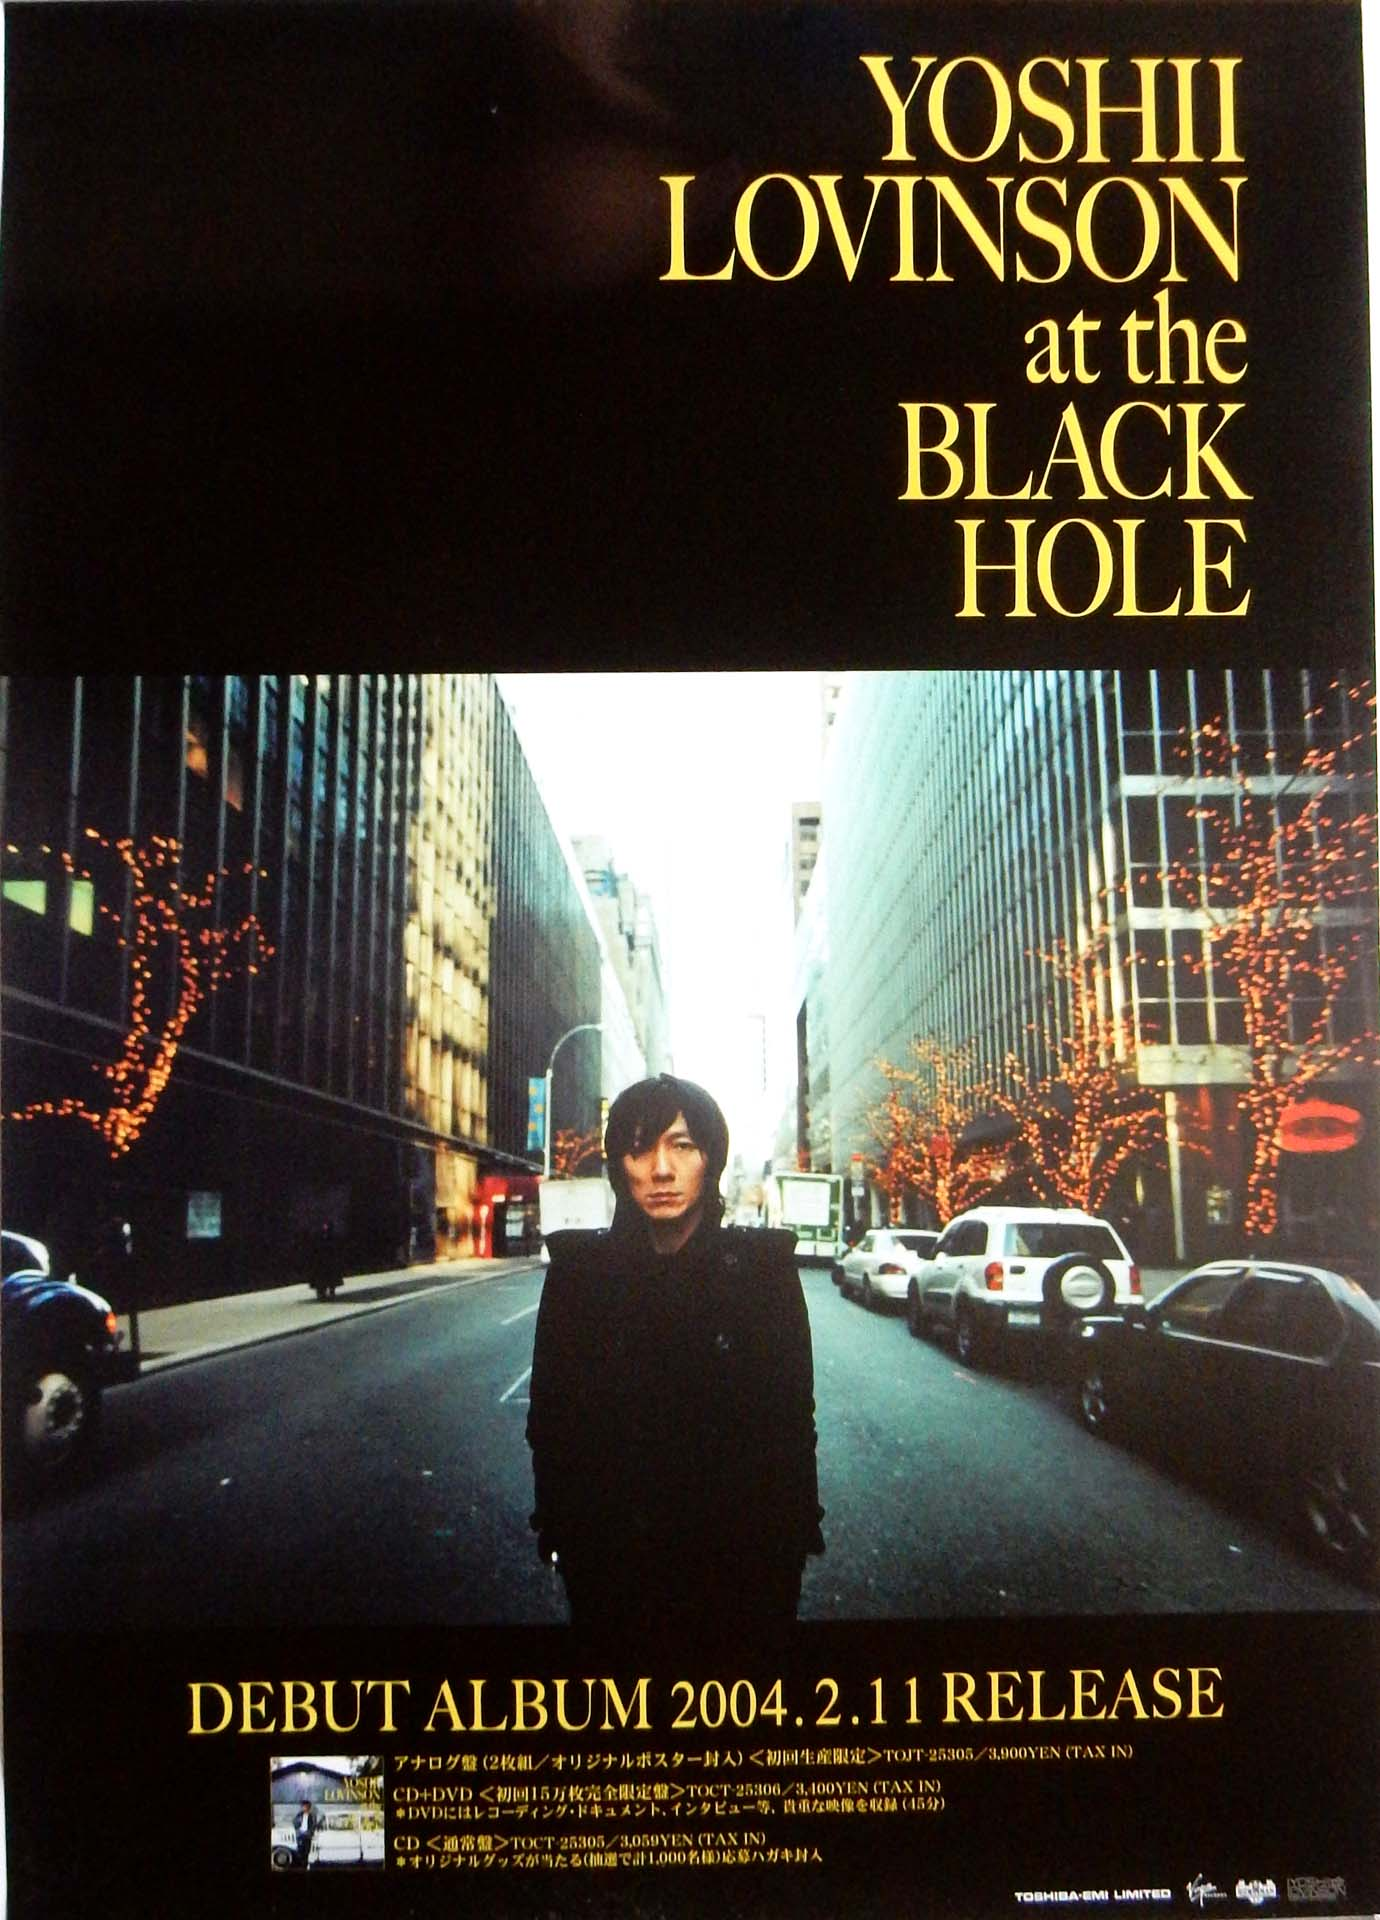 YOSHII LOVINSON 「at the BLACK HOLE」のポスター